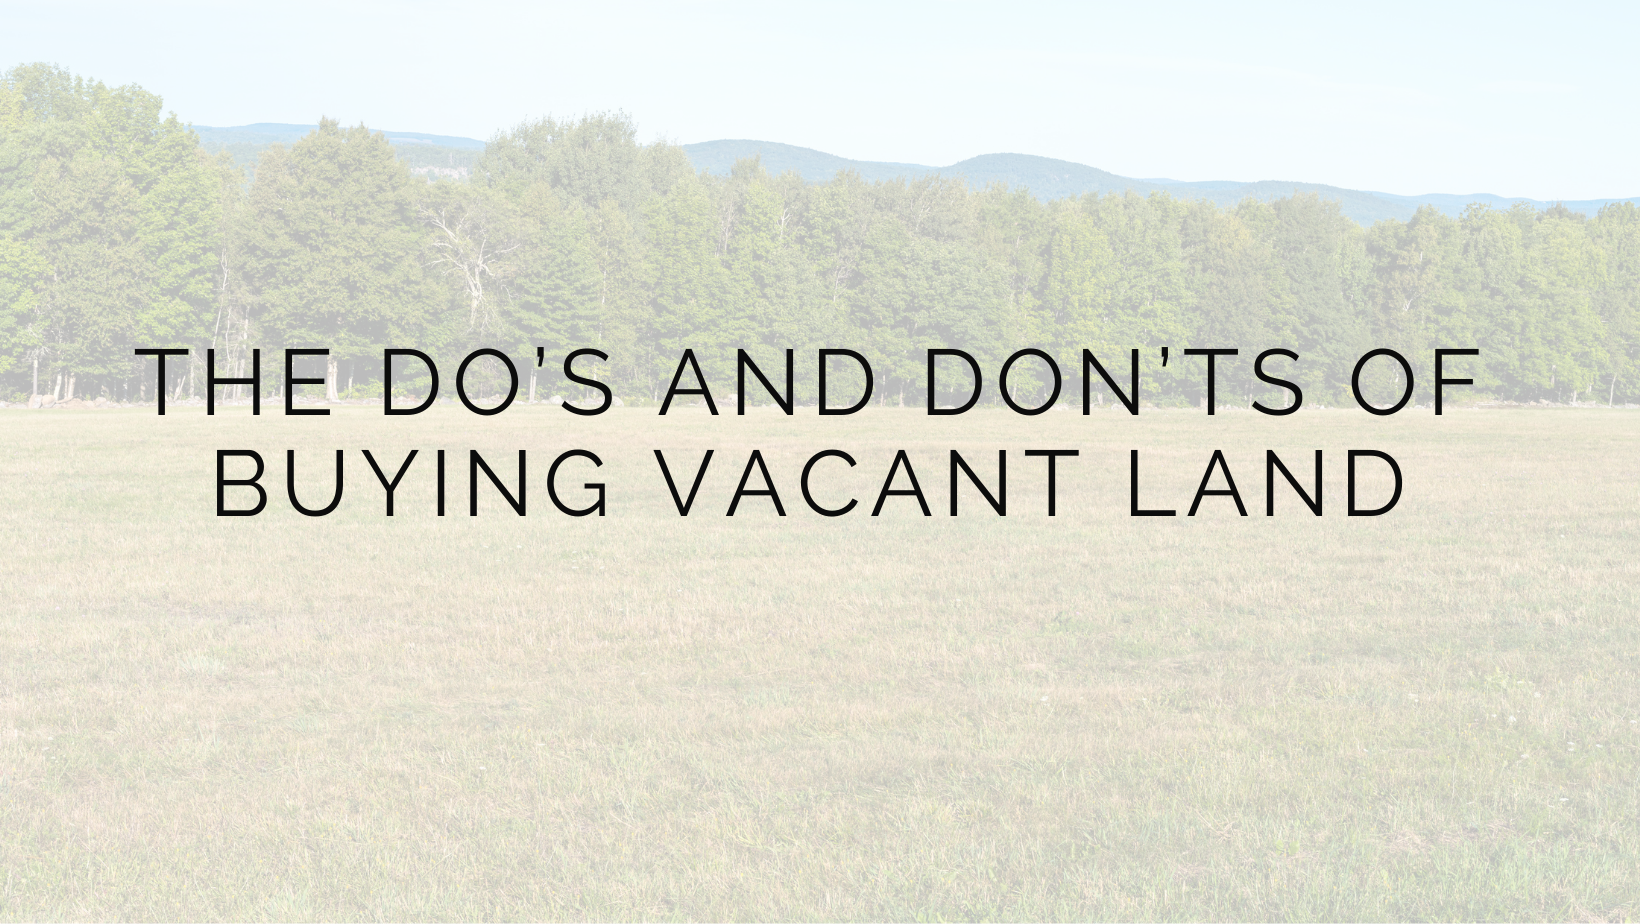 The Do's and Don'ts of Buying Vacant Land